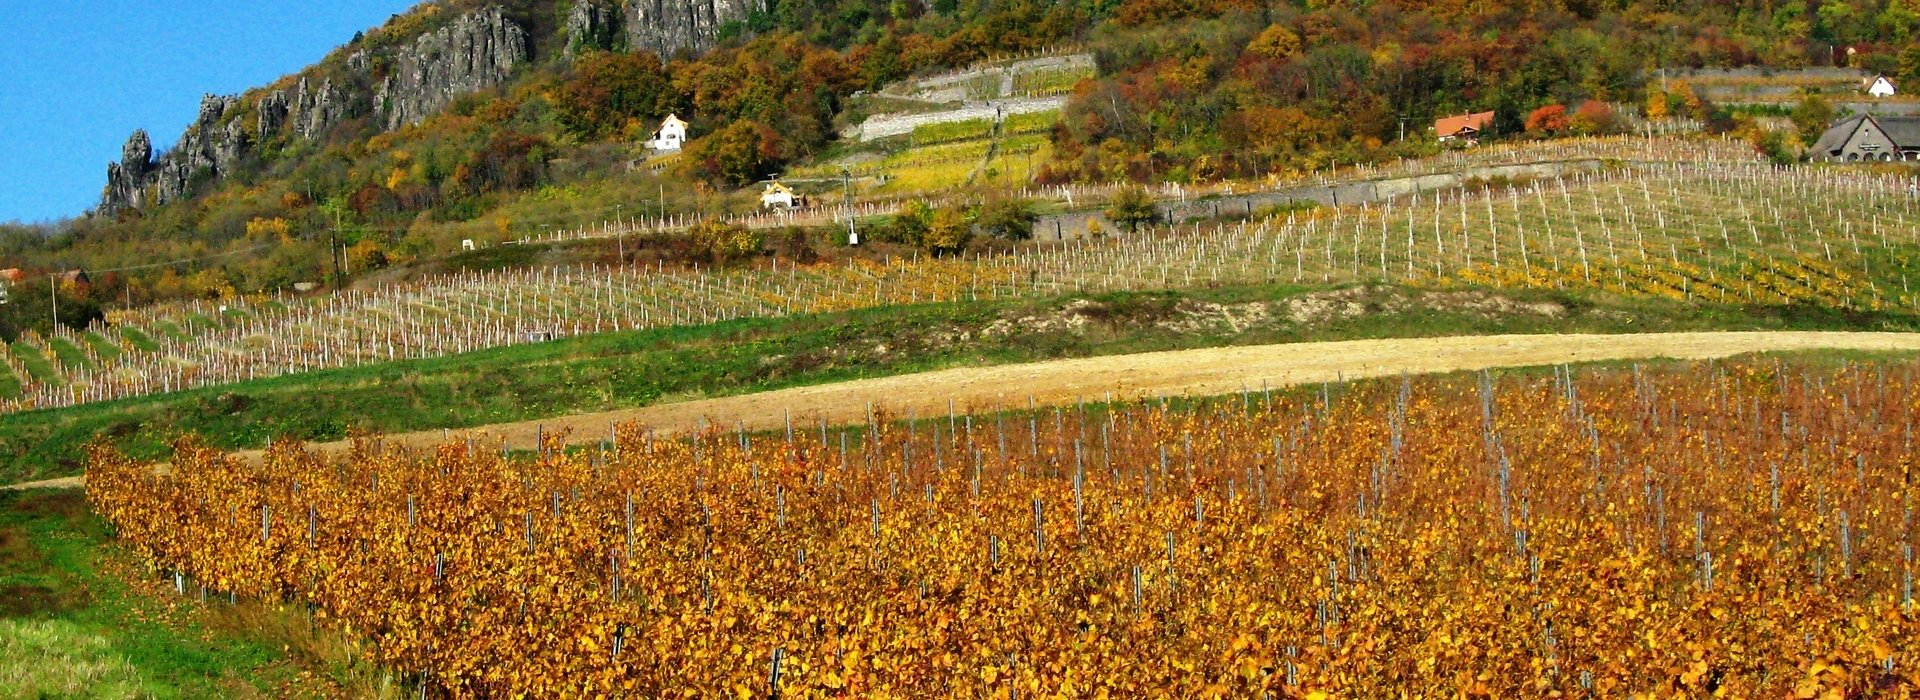 Kunság Wineregion